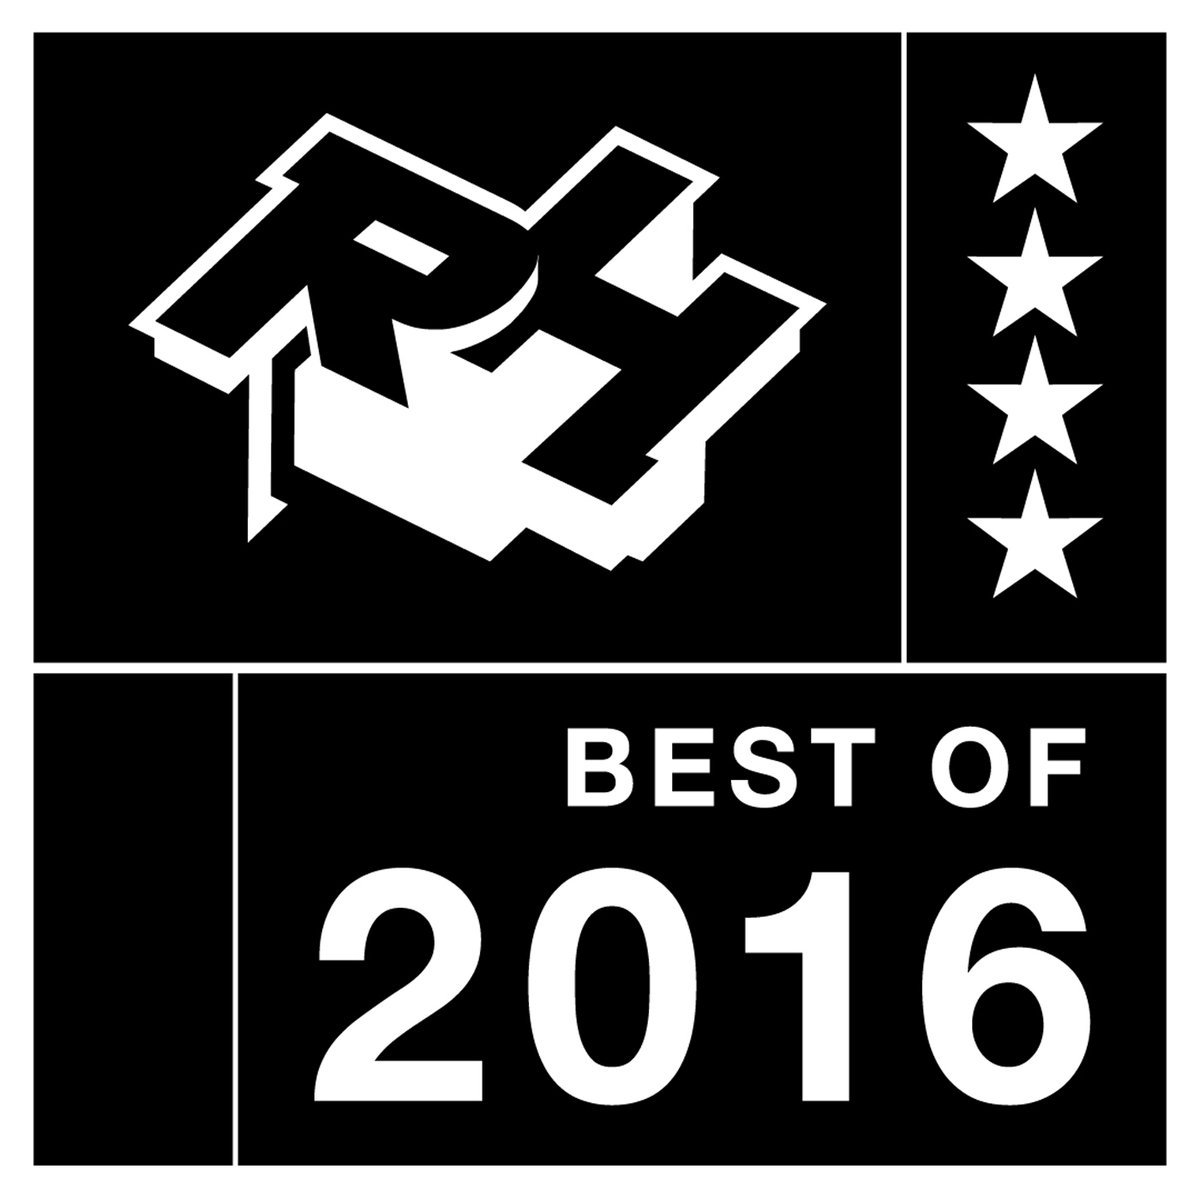 Rush hour music best of 2016 rhm2016 for Best tech house music